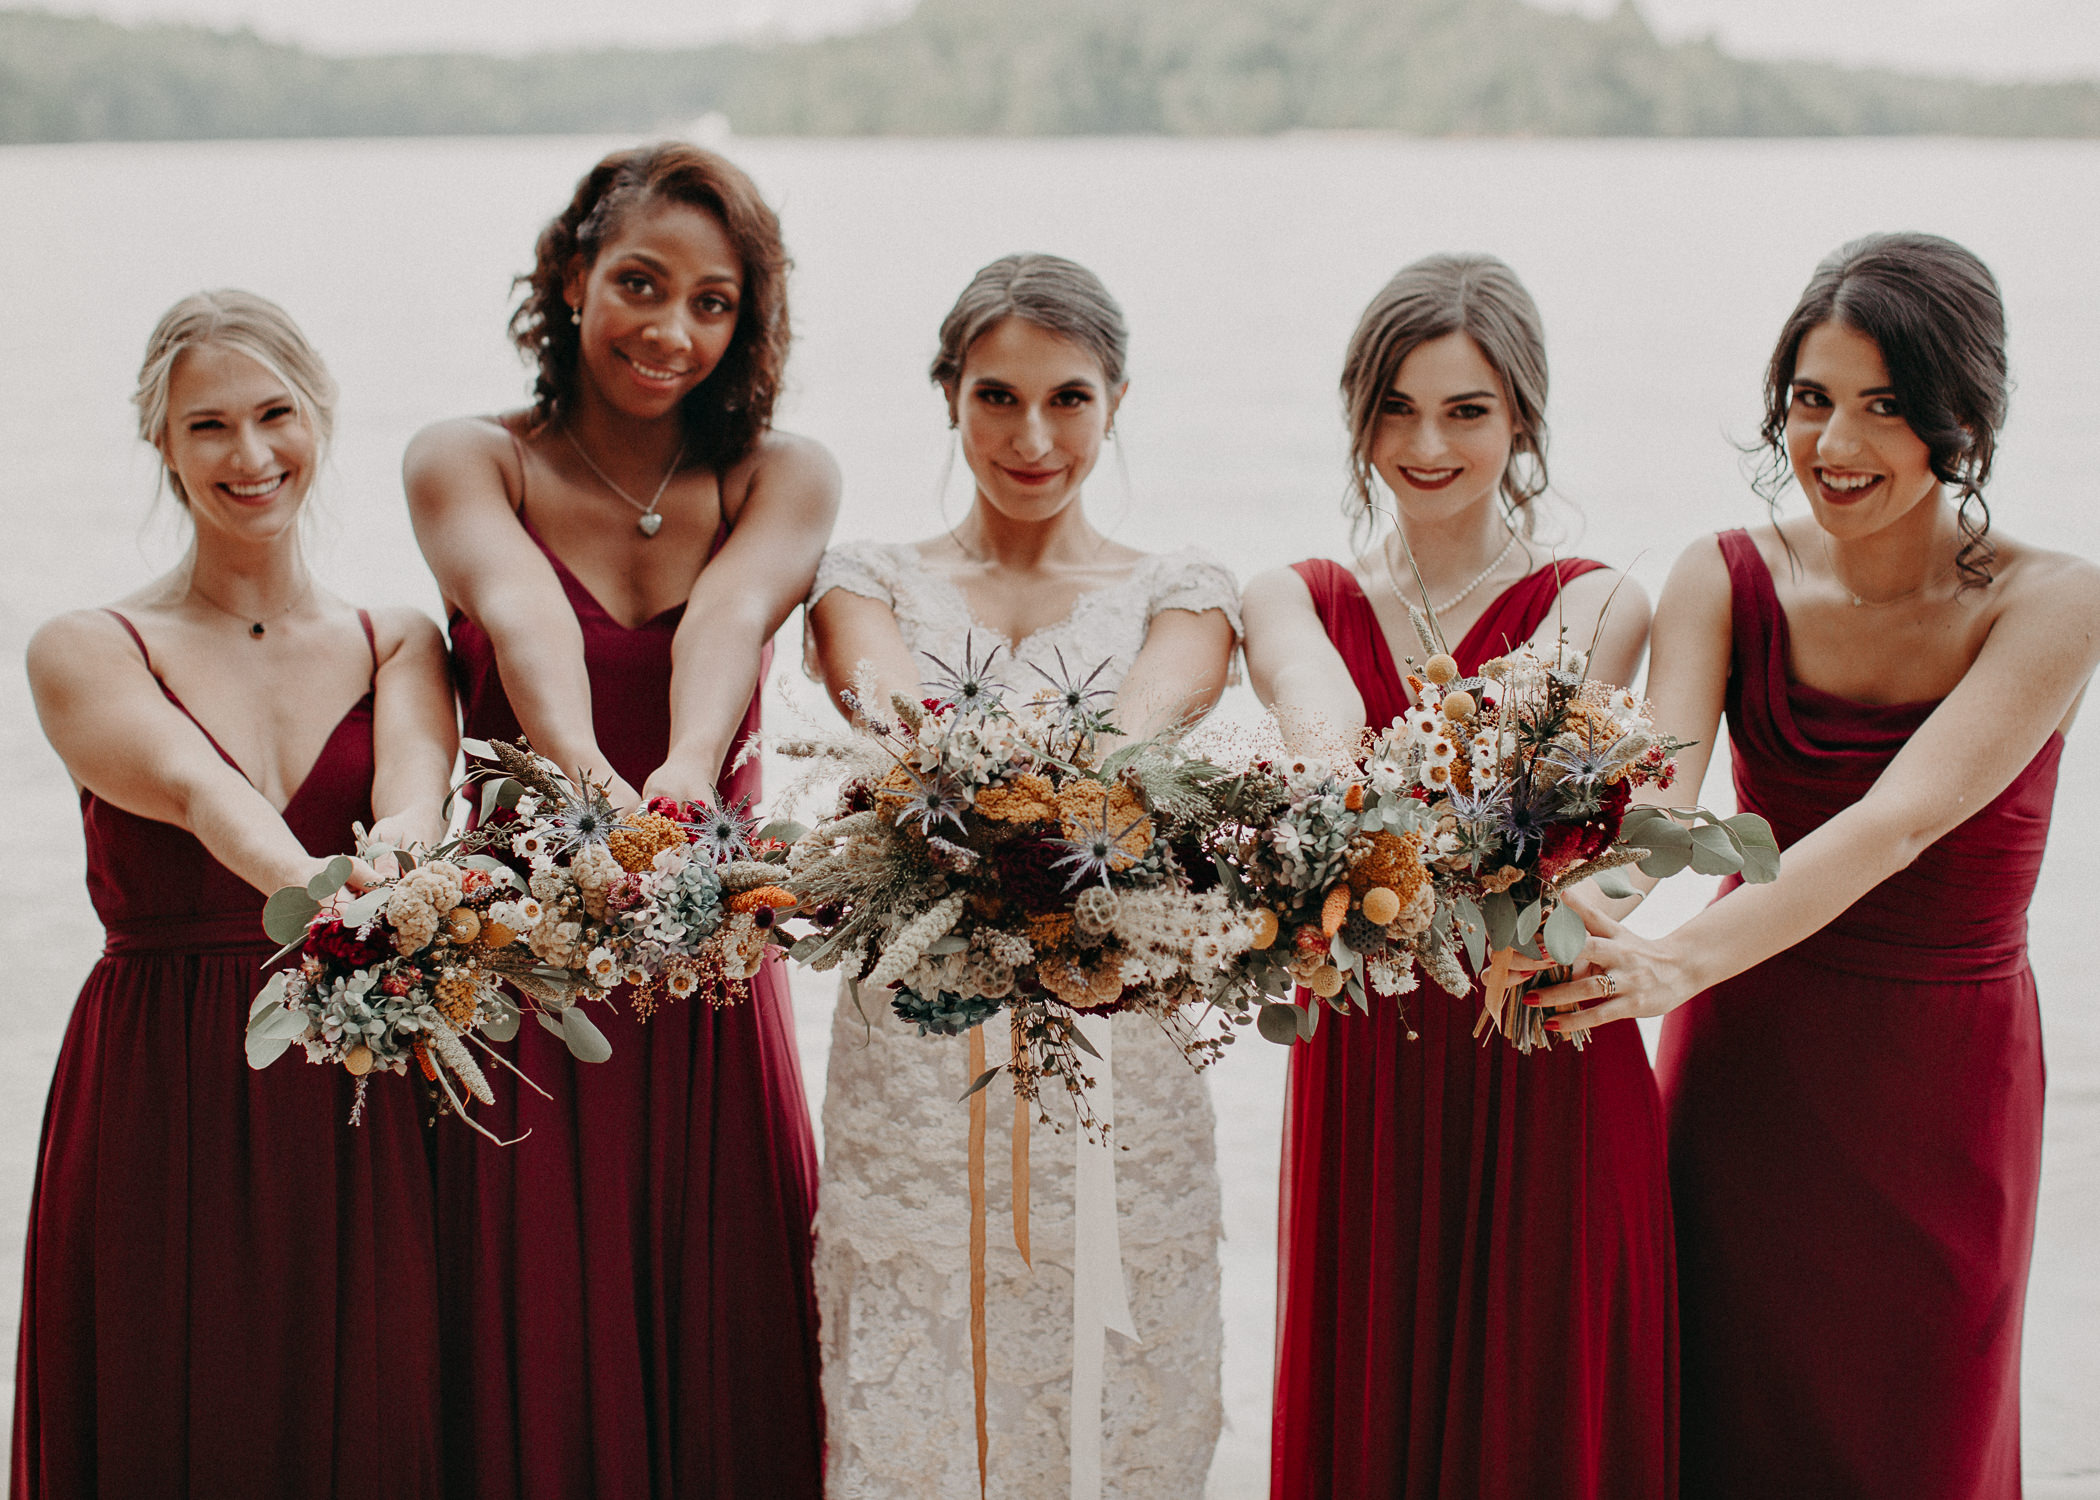 83 Bridal Party and Bride & Groom Portraits before the ceremony on wedding day - Atlanta Wedding Photographer .jpg